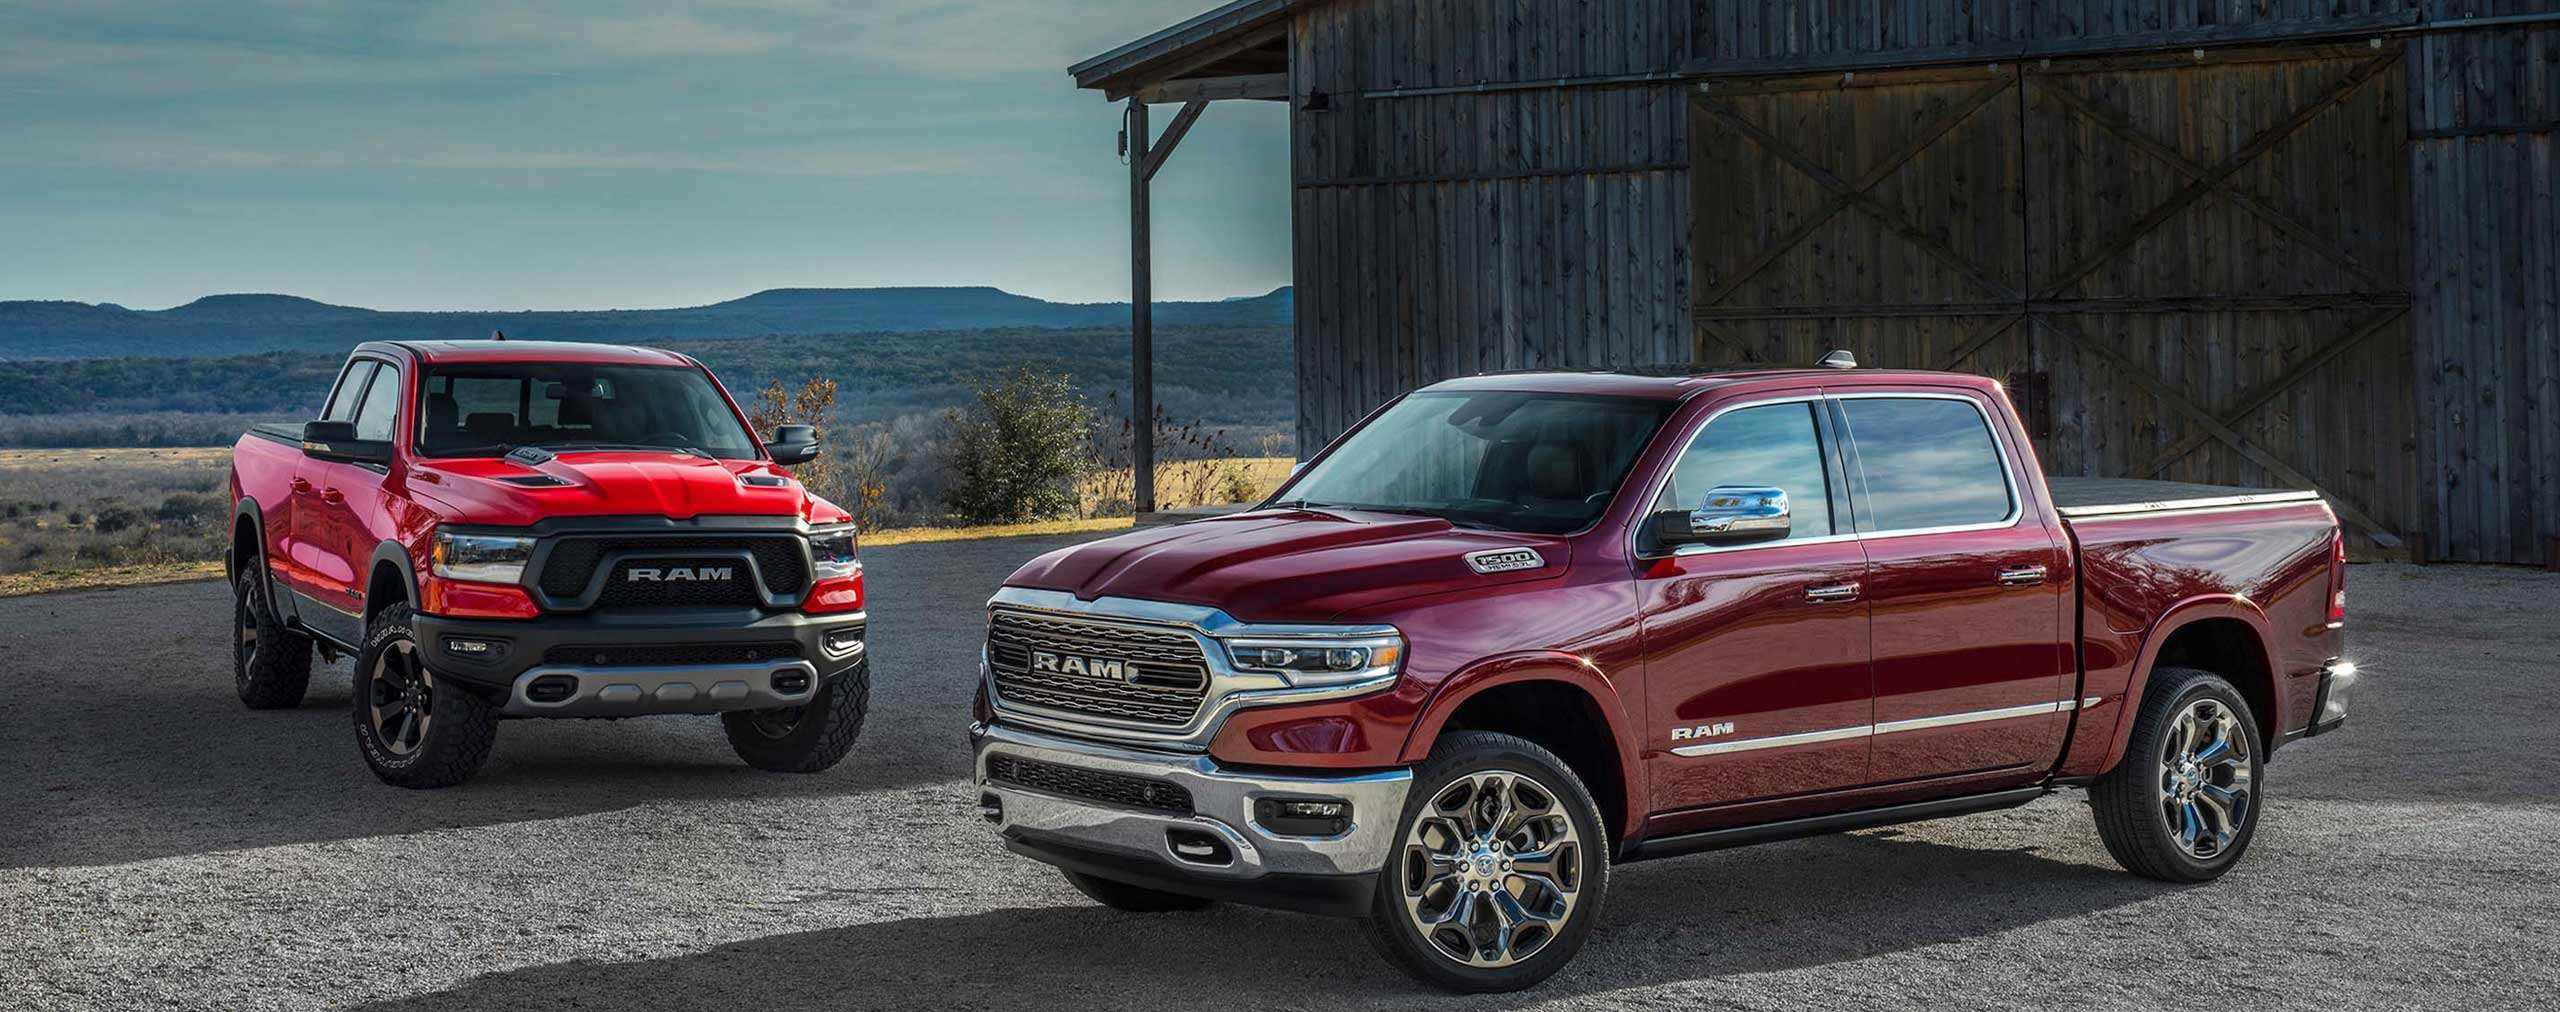 39 Gallery of New 2019 Dodge Ram 4X4 Specs Images for New 2019 Dodge Ram 4X4 Specs